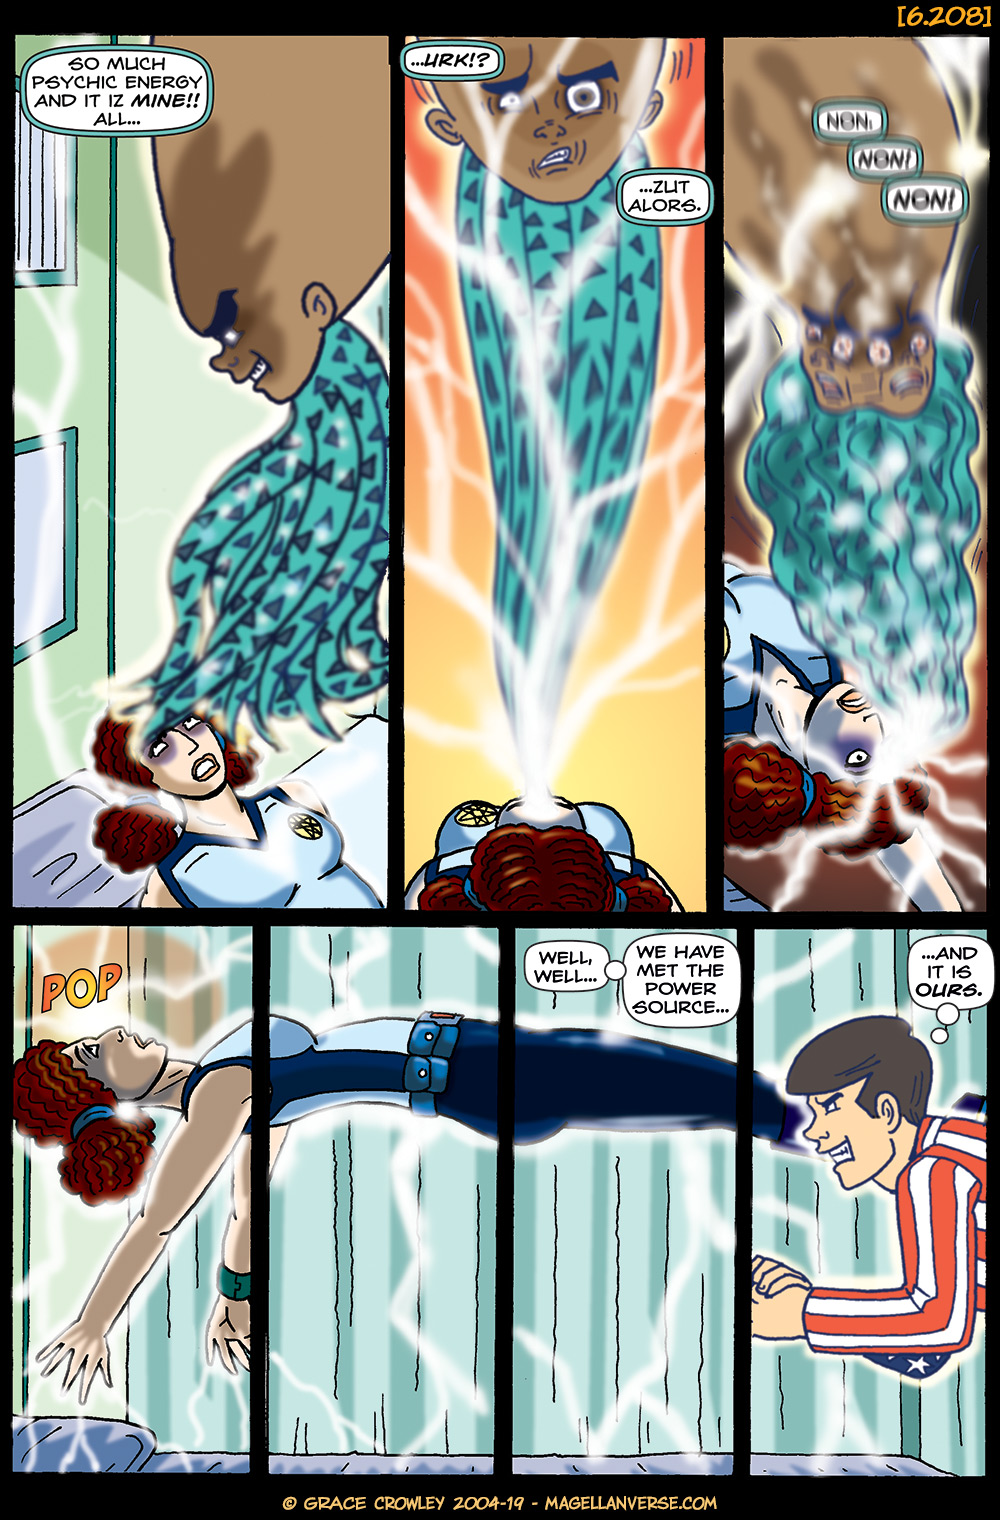 Page 6.208